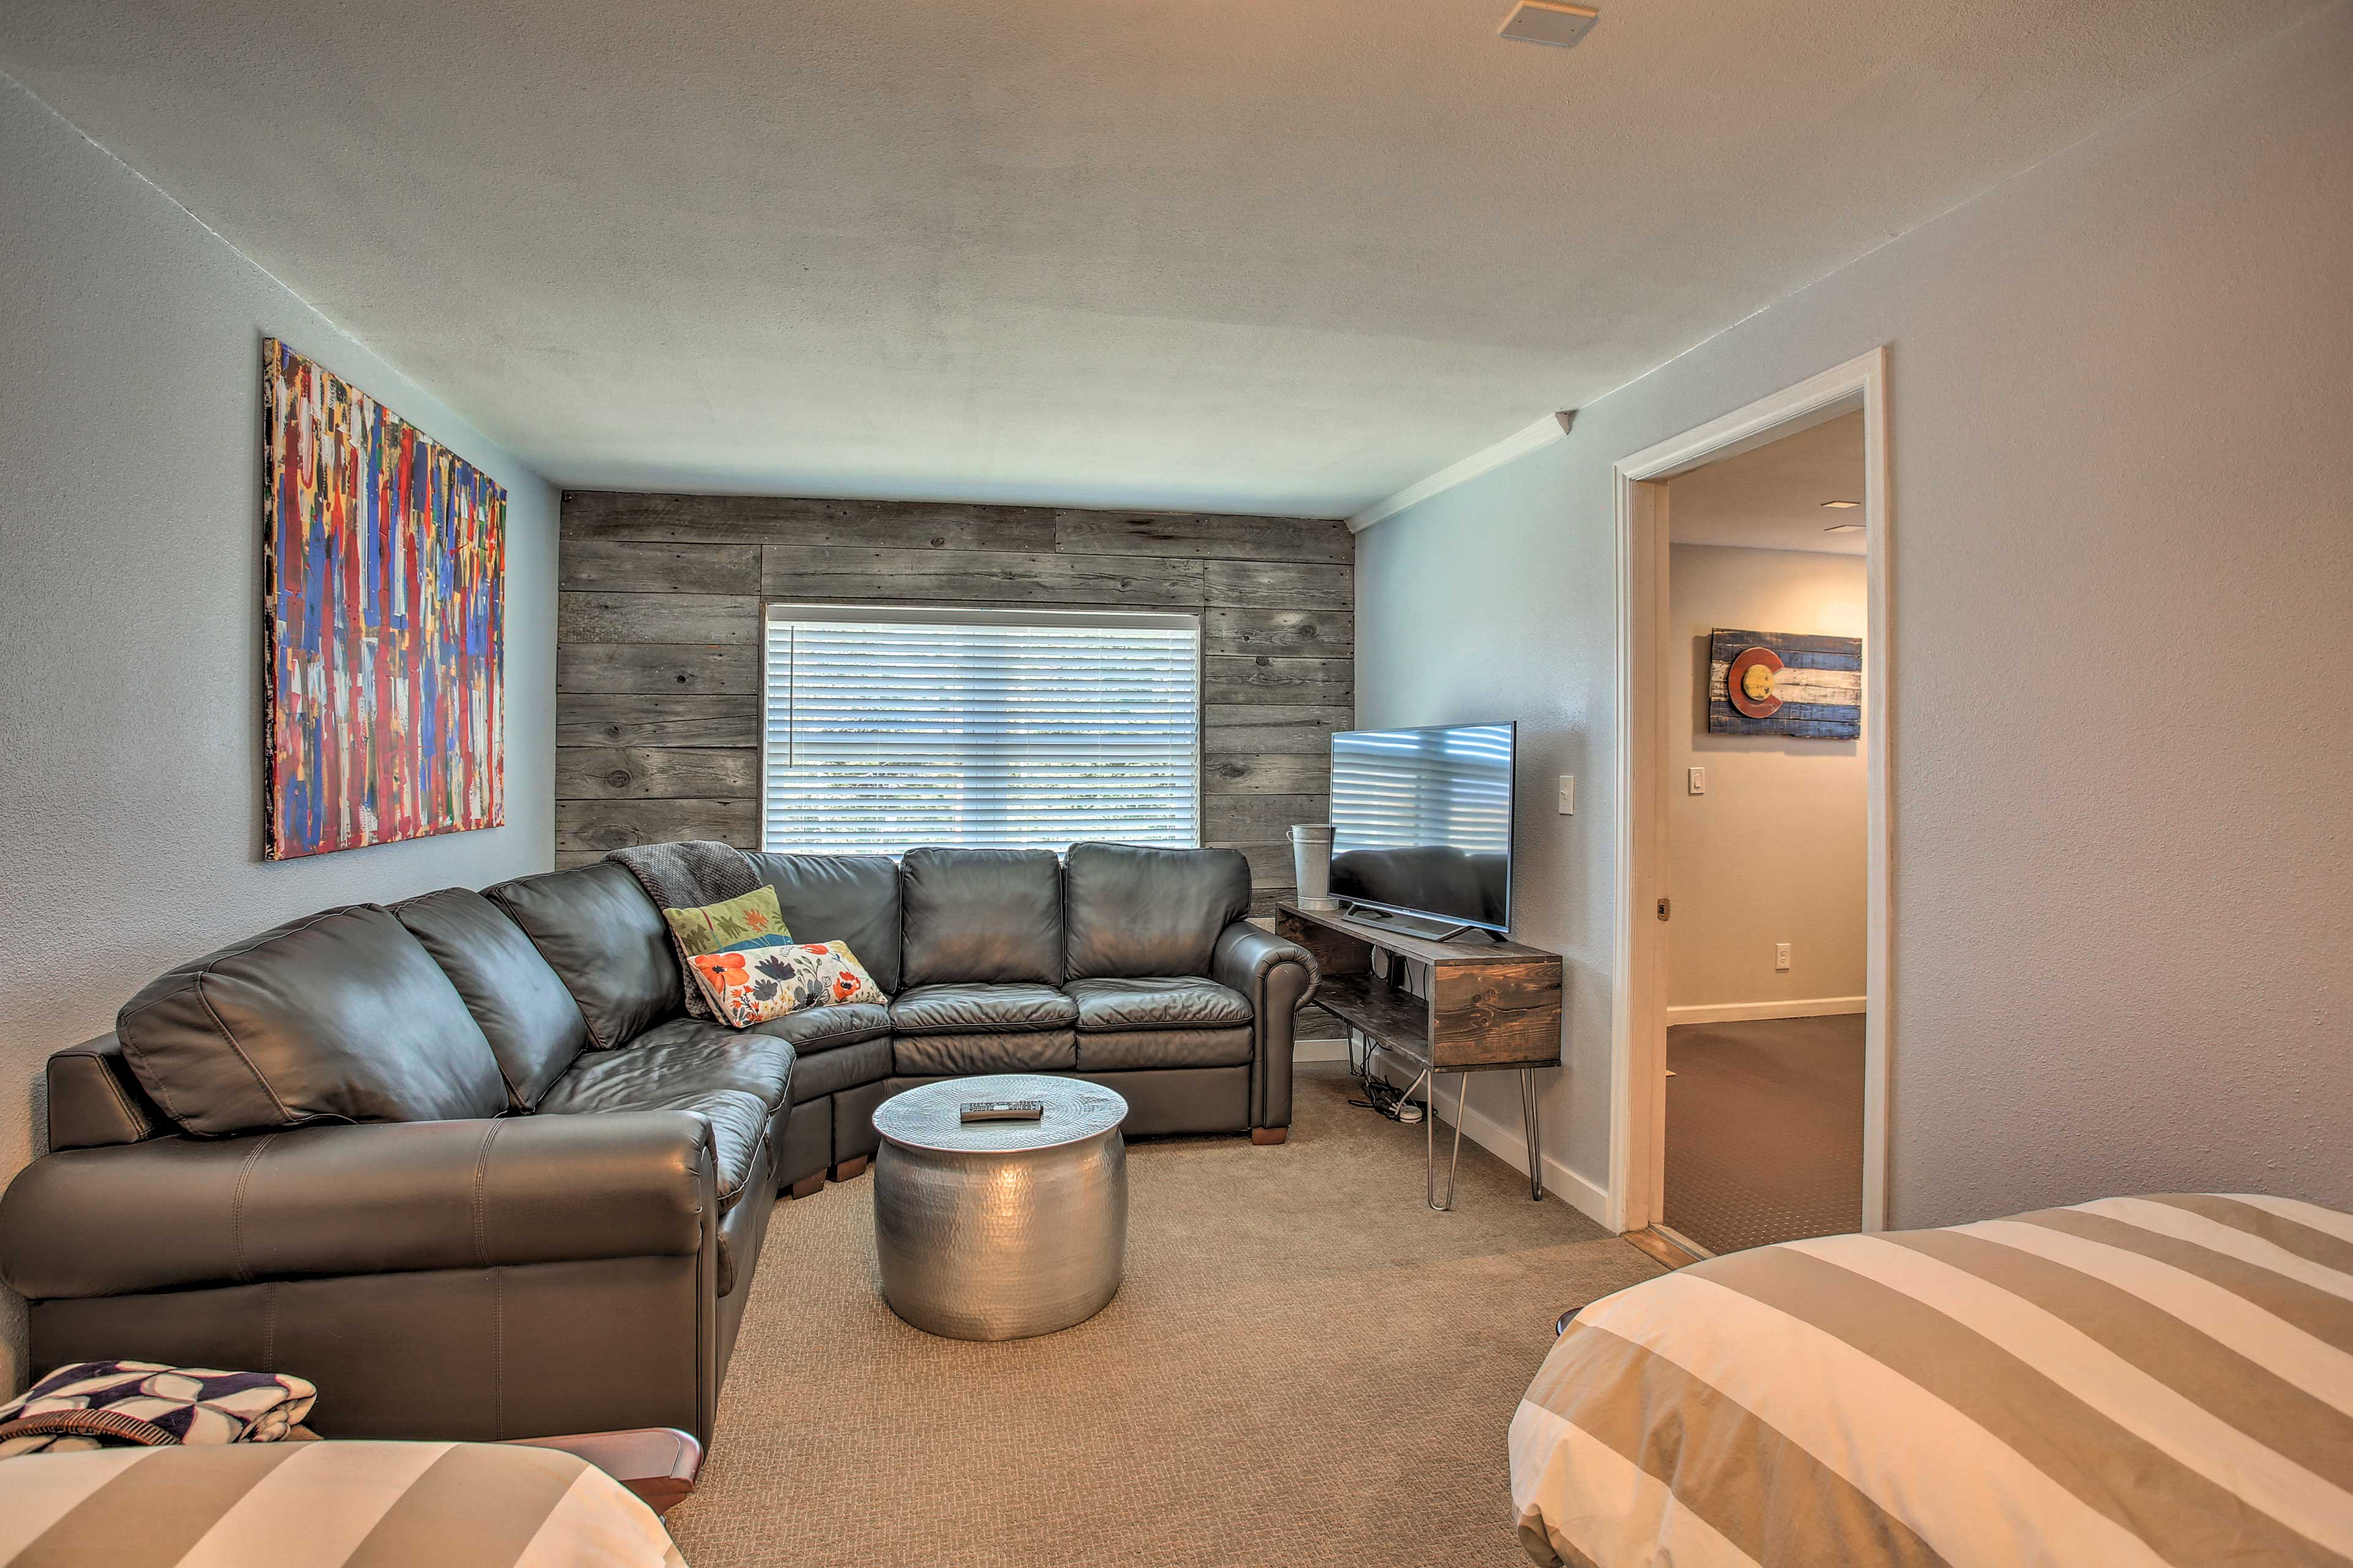 This room includes a sitting area complete with a flat-screen TV.